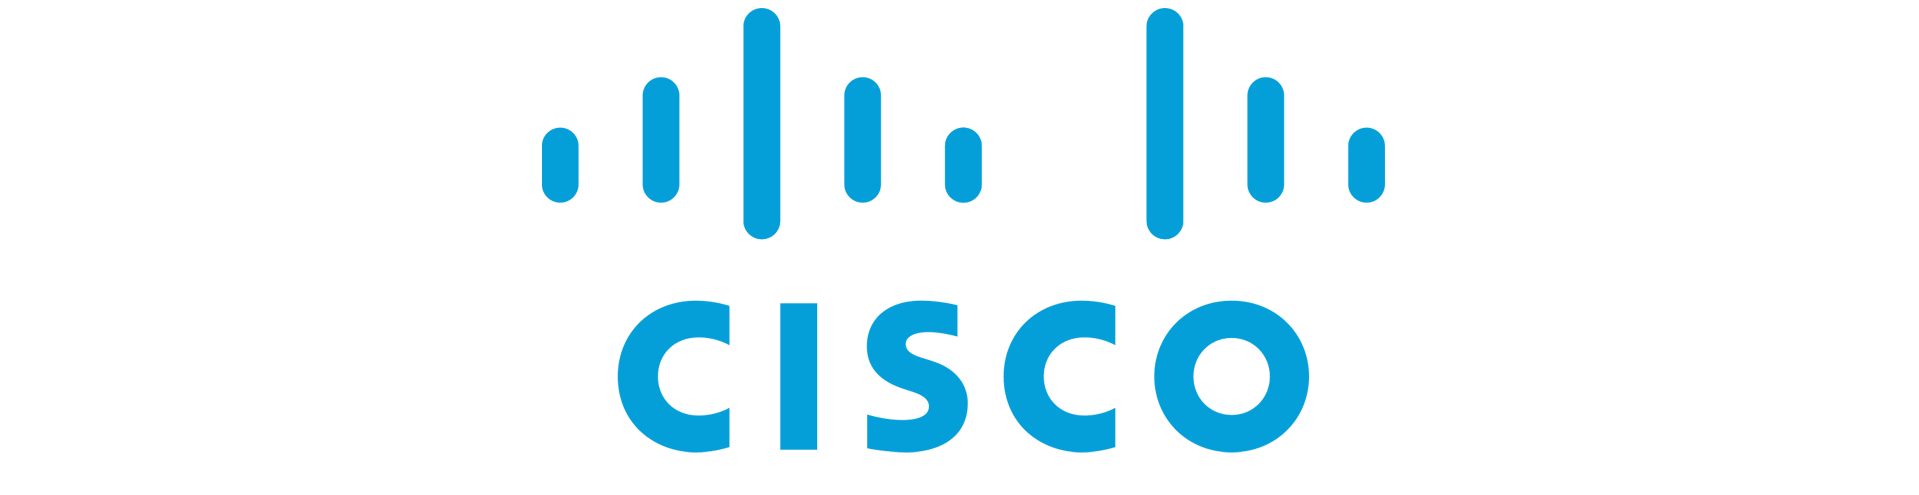 cisco-homeLogo_PM-min